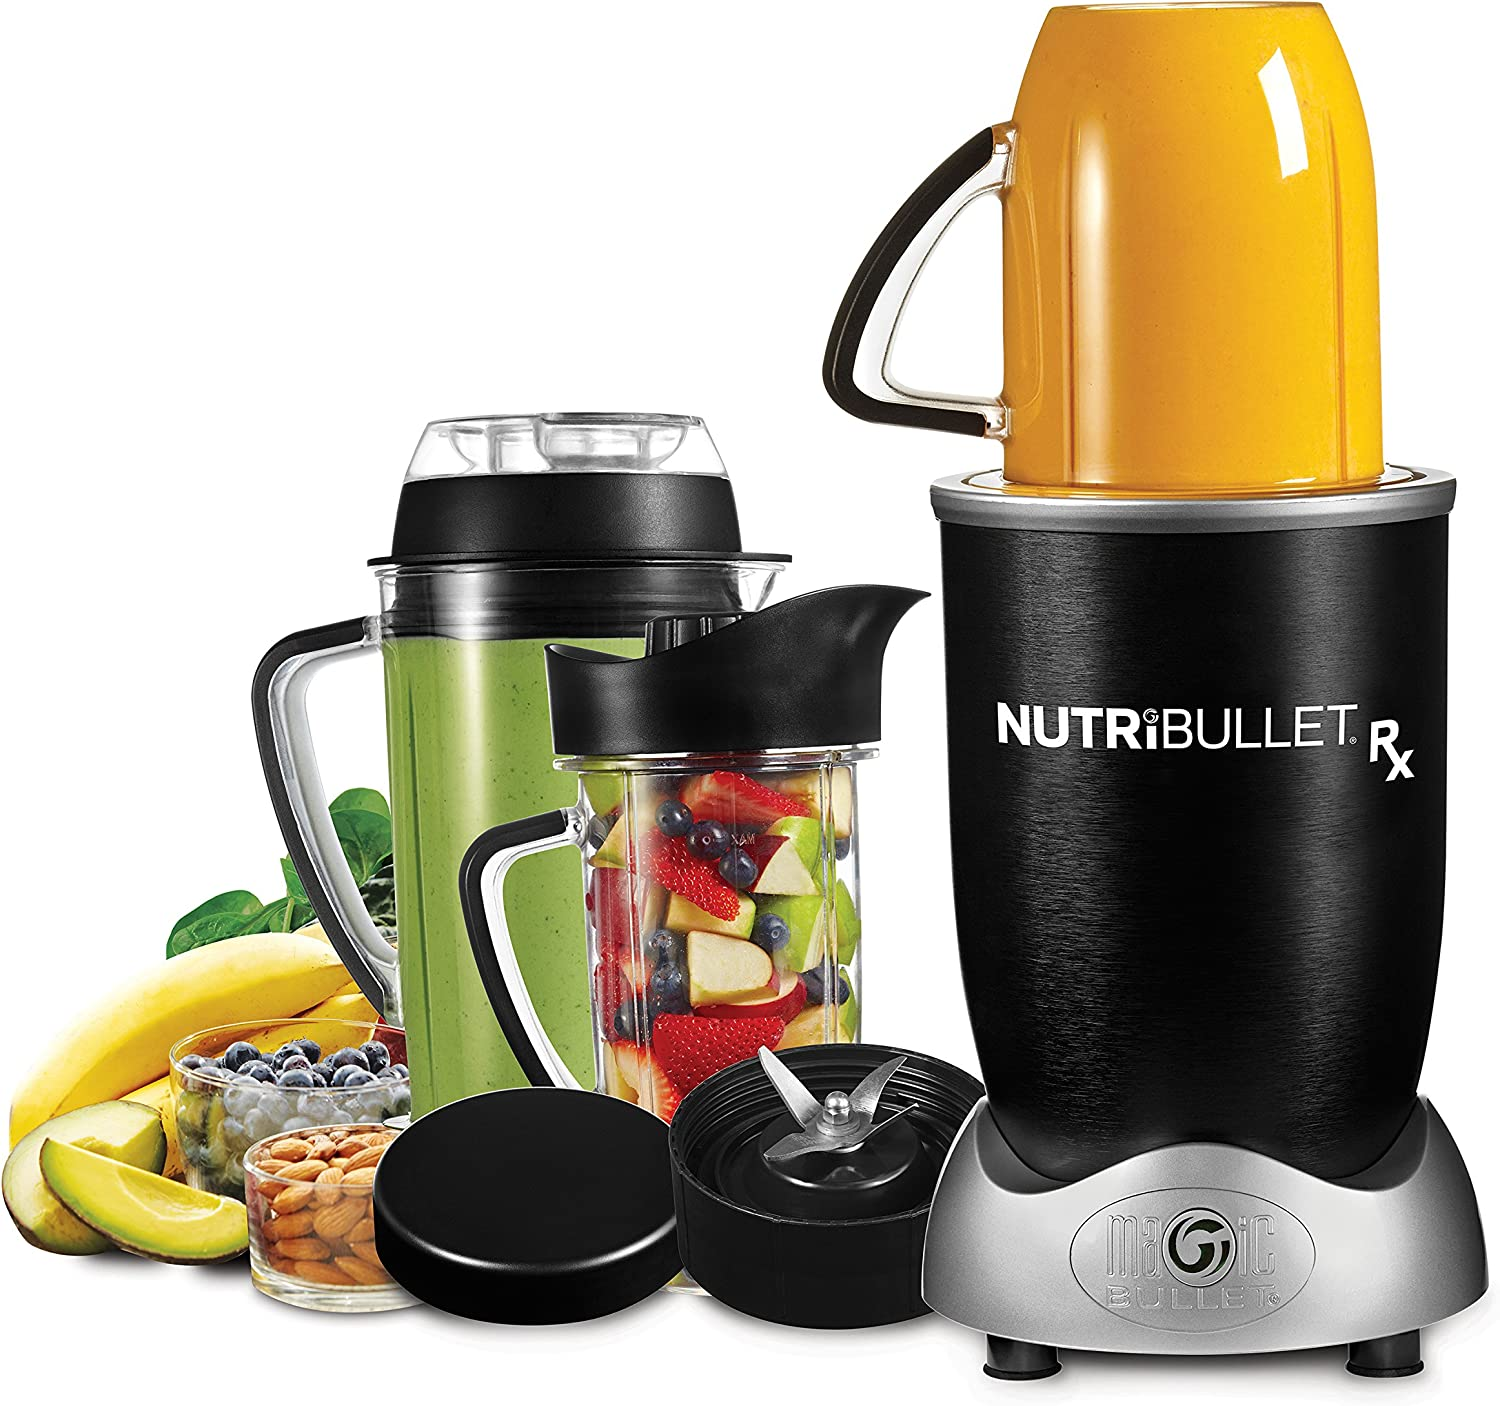 NutriBullet Rx N17-1001 Blender for Indian Cooking